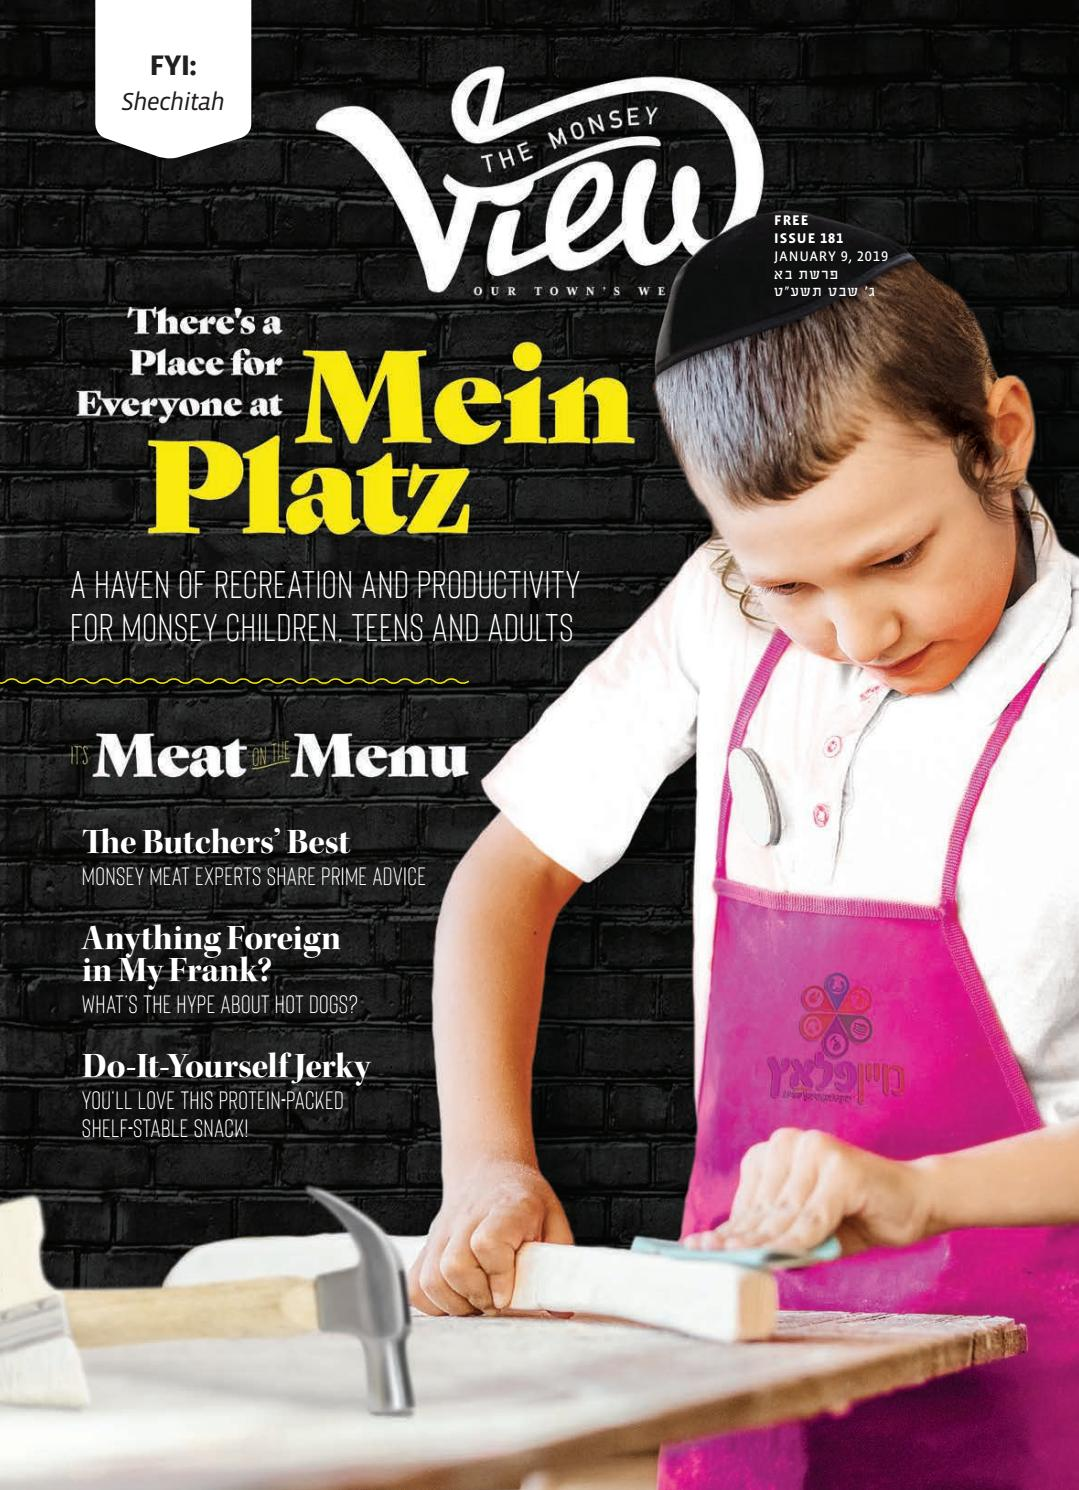 ff52d61cff2 Issue 181 by The Monsey View - issuu